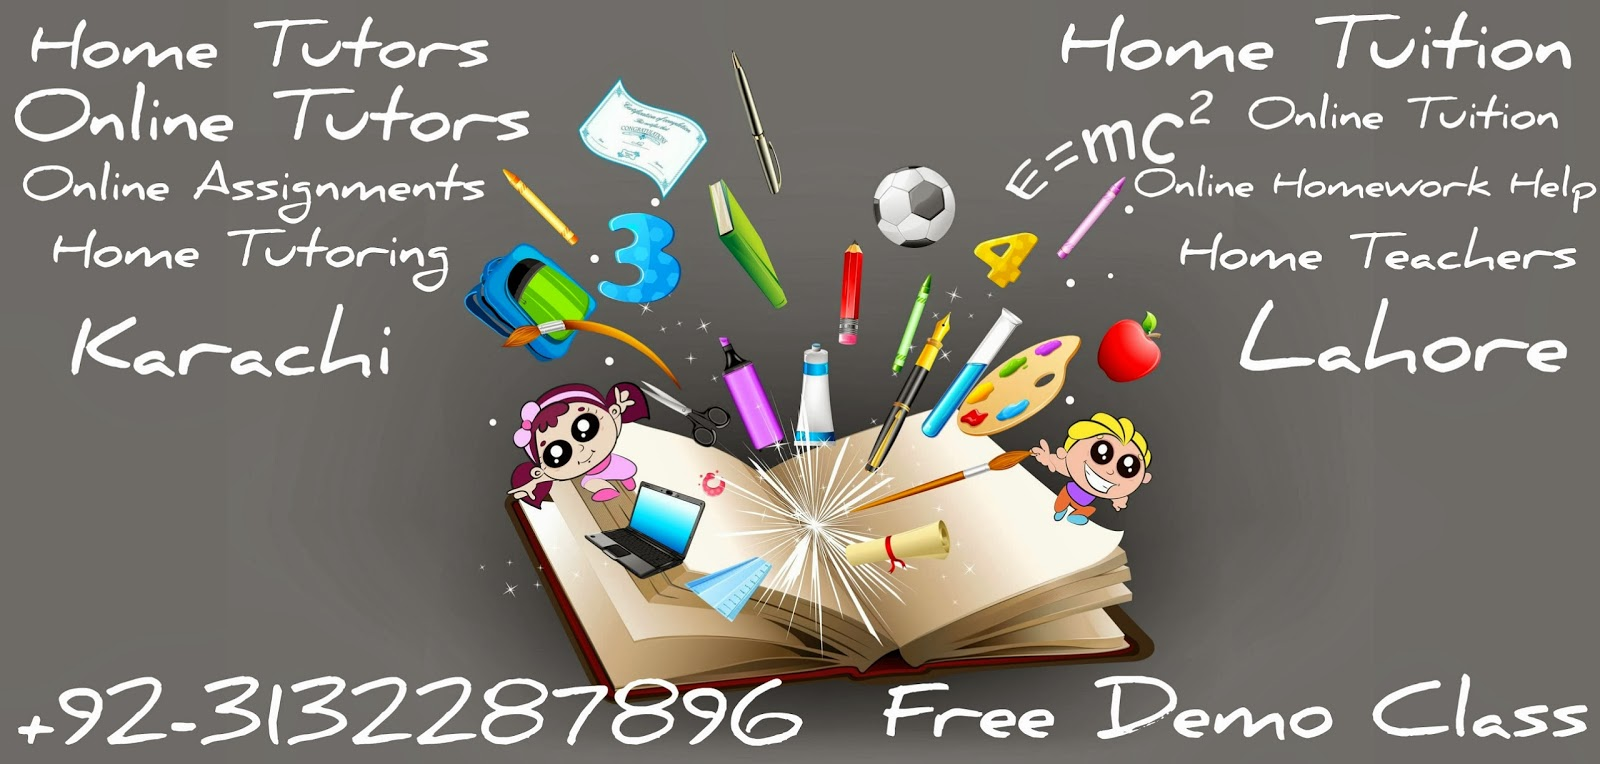 home tutor in karachi and tuition provider private teacher for make a powerful difference for you and your community by applying for teacher registration or to get a home tutor in your area we are operating in karachi